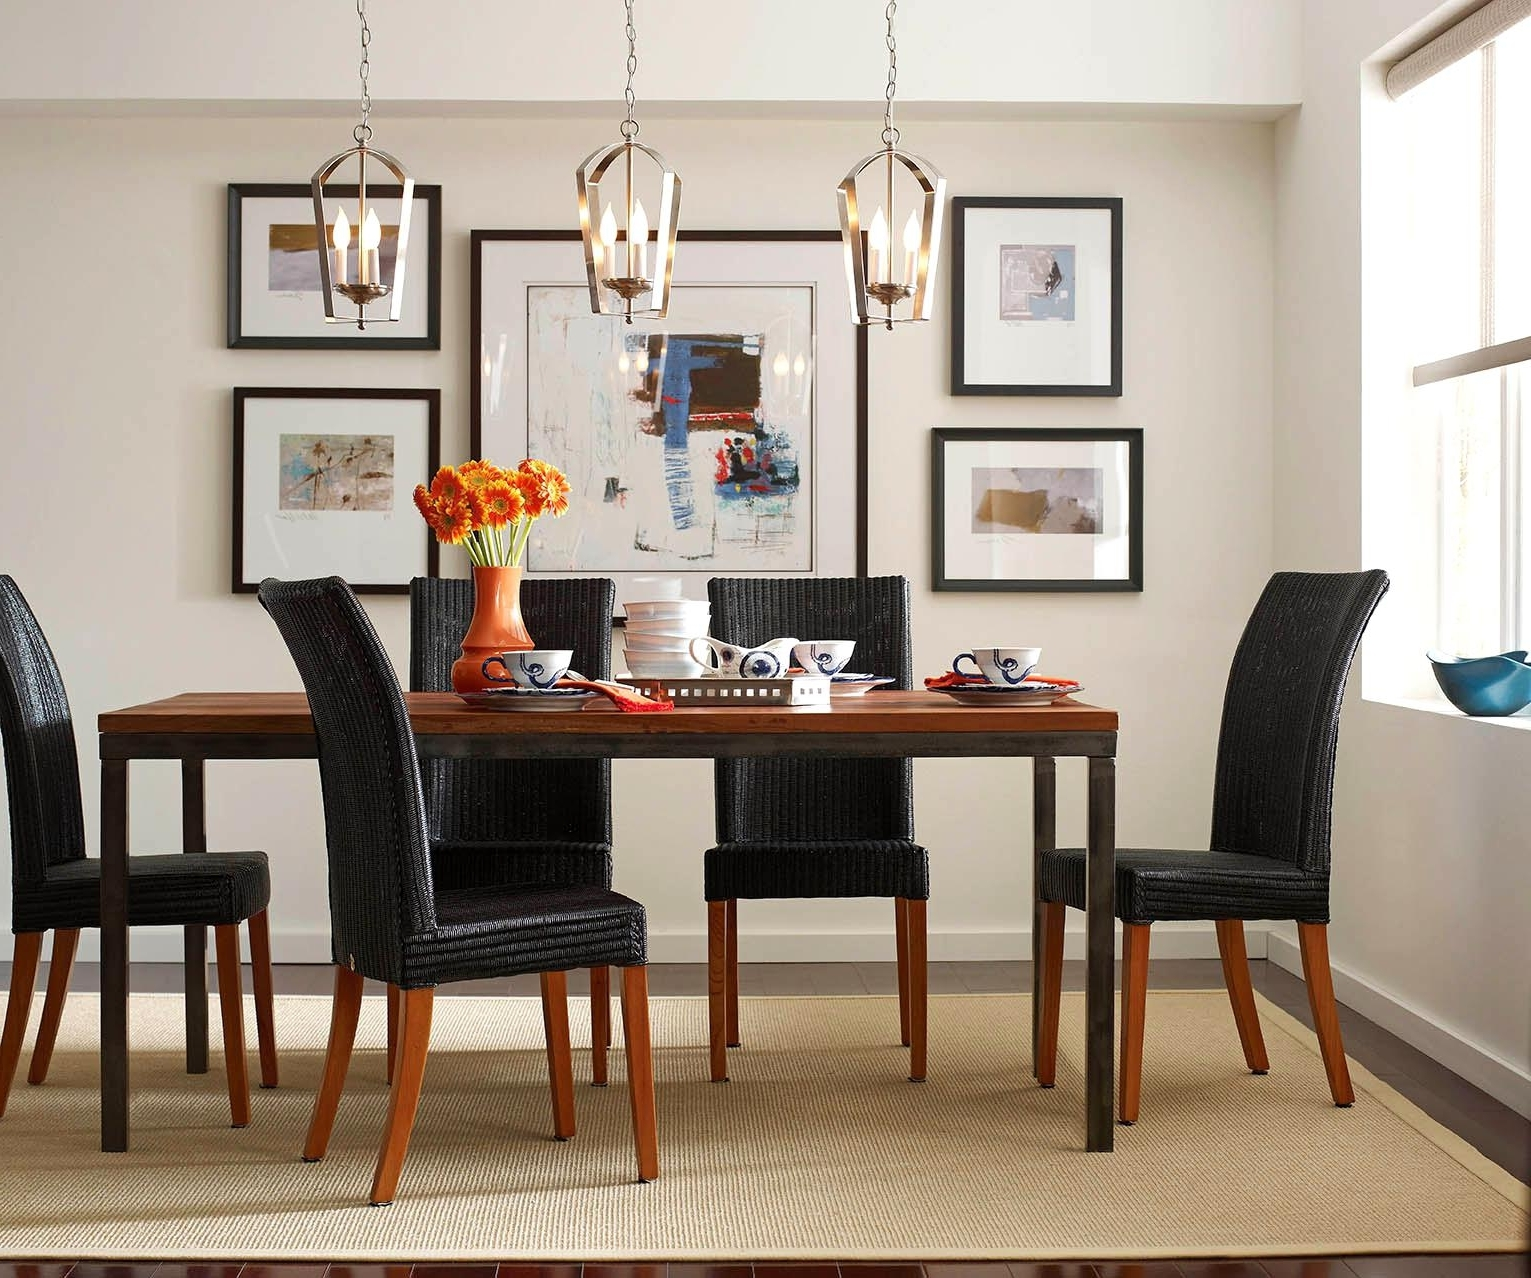 Dining Tables Ceiling Lights With Regard To Well Known Enjoyable Pendant Lights Dining Room Hanging Delier Dining Room (Gallery 8 of 25)